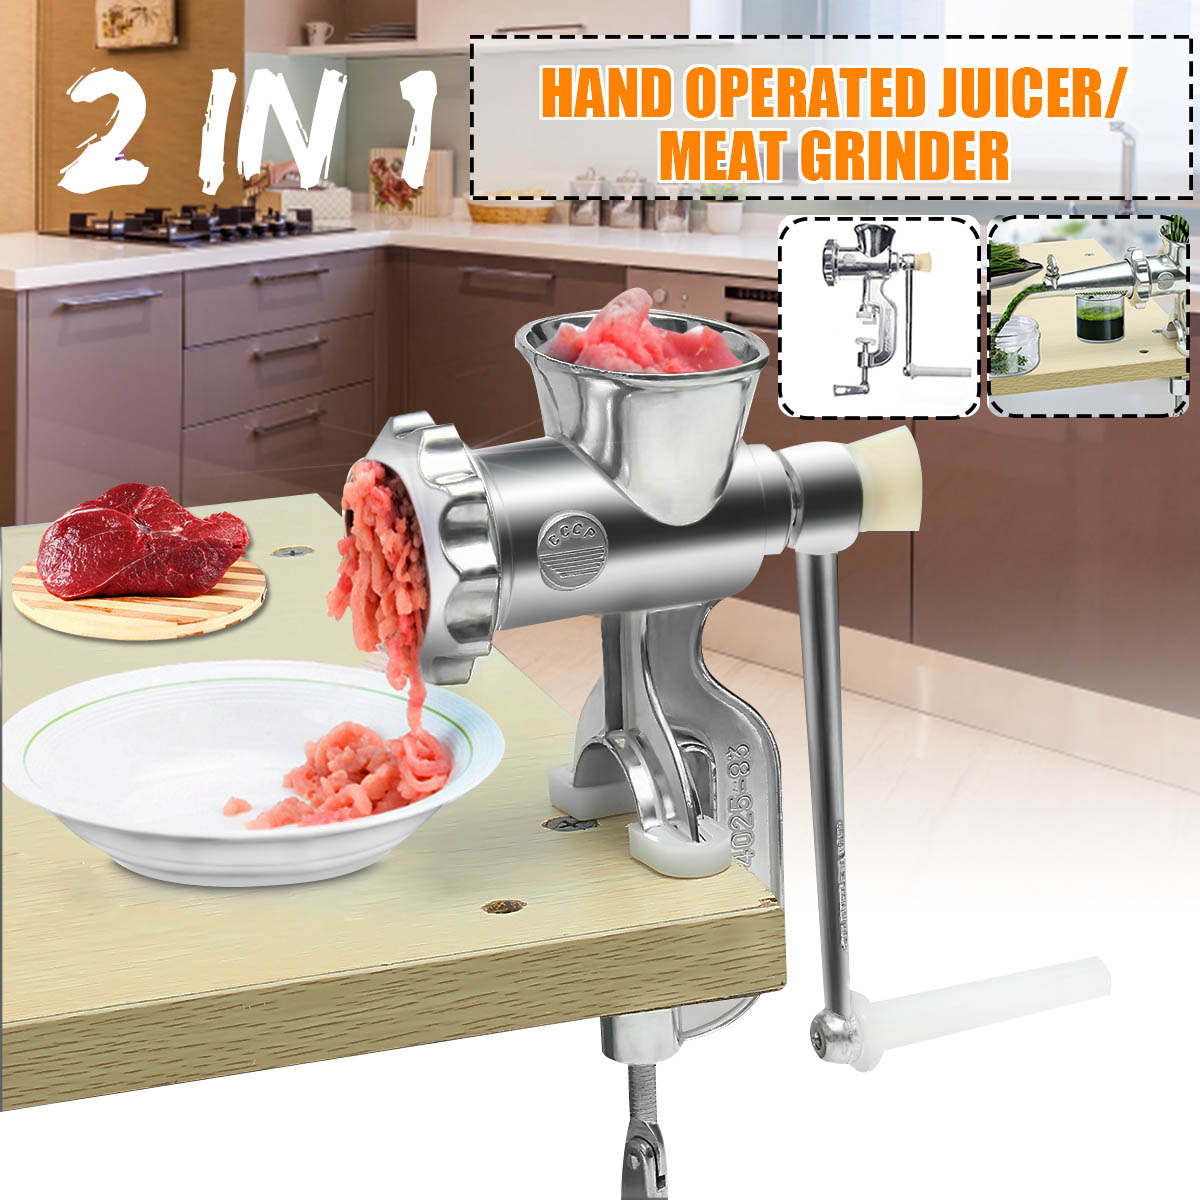 2 In 1 Hand Operated Juicer Food Meat Grinder Household Manual Juice Squeezer Press Extractor Meat Fruit Vegetable Wheatgrass